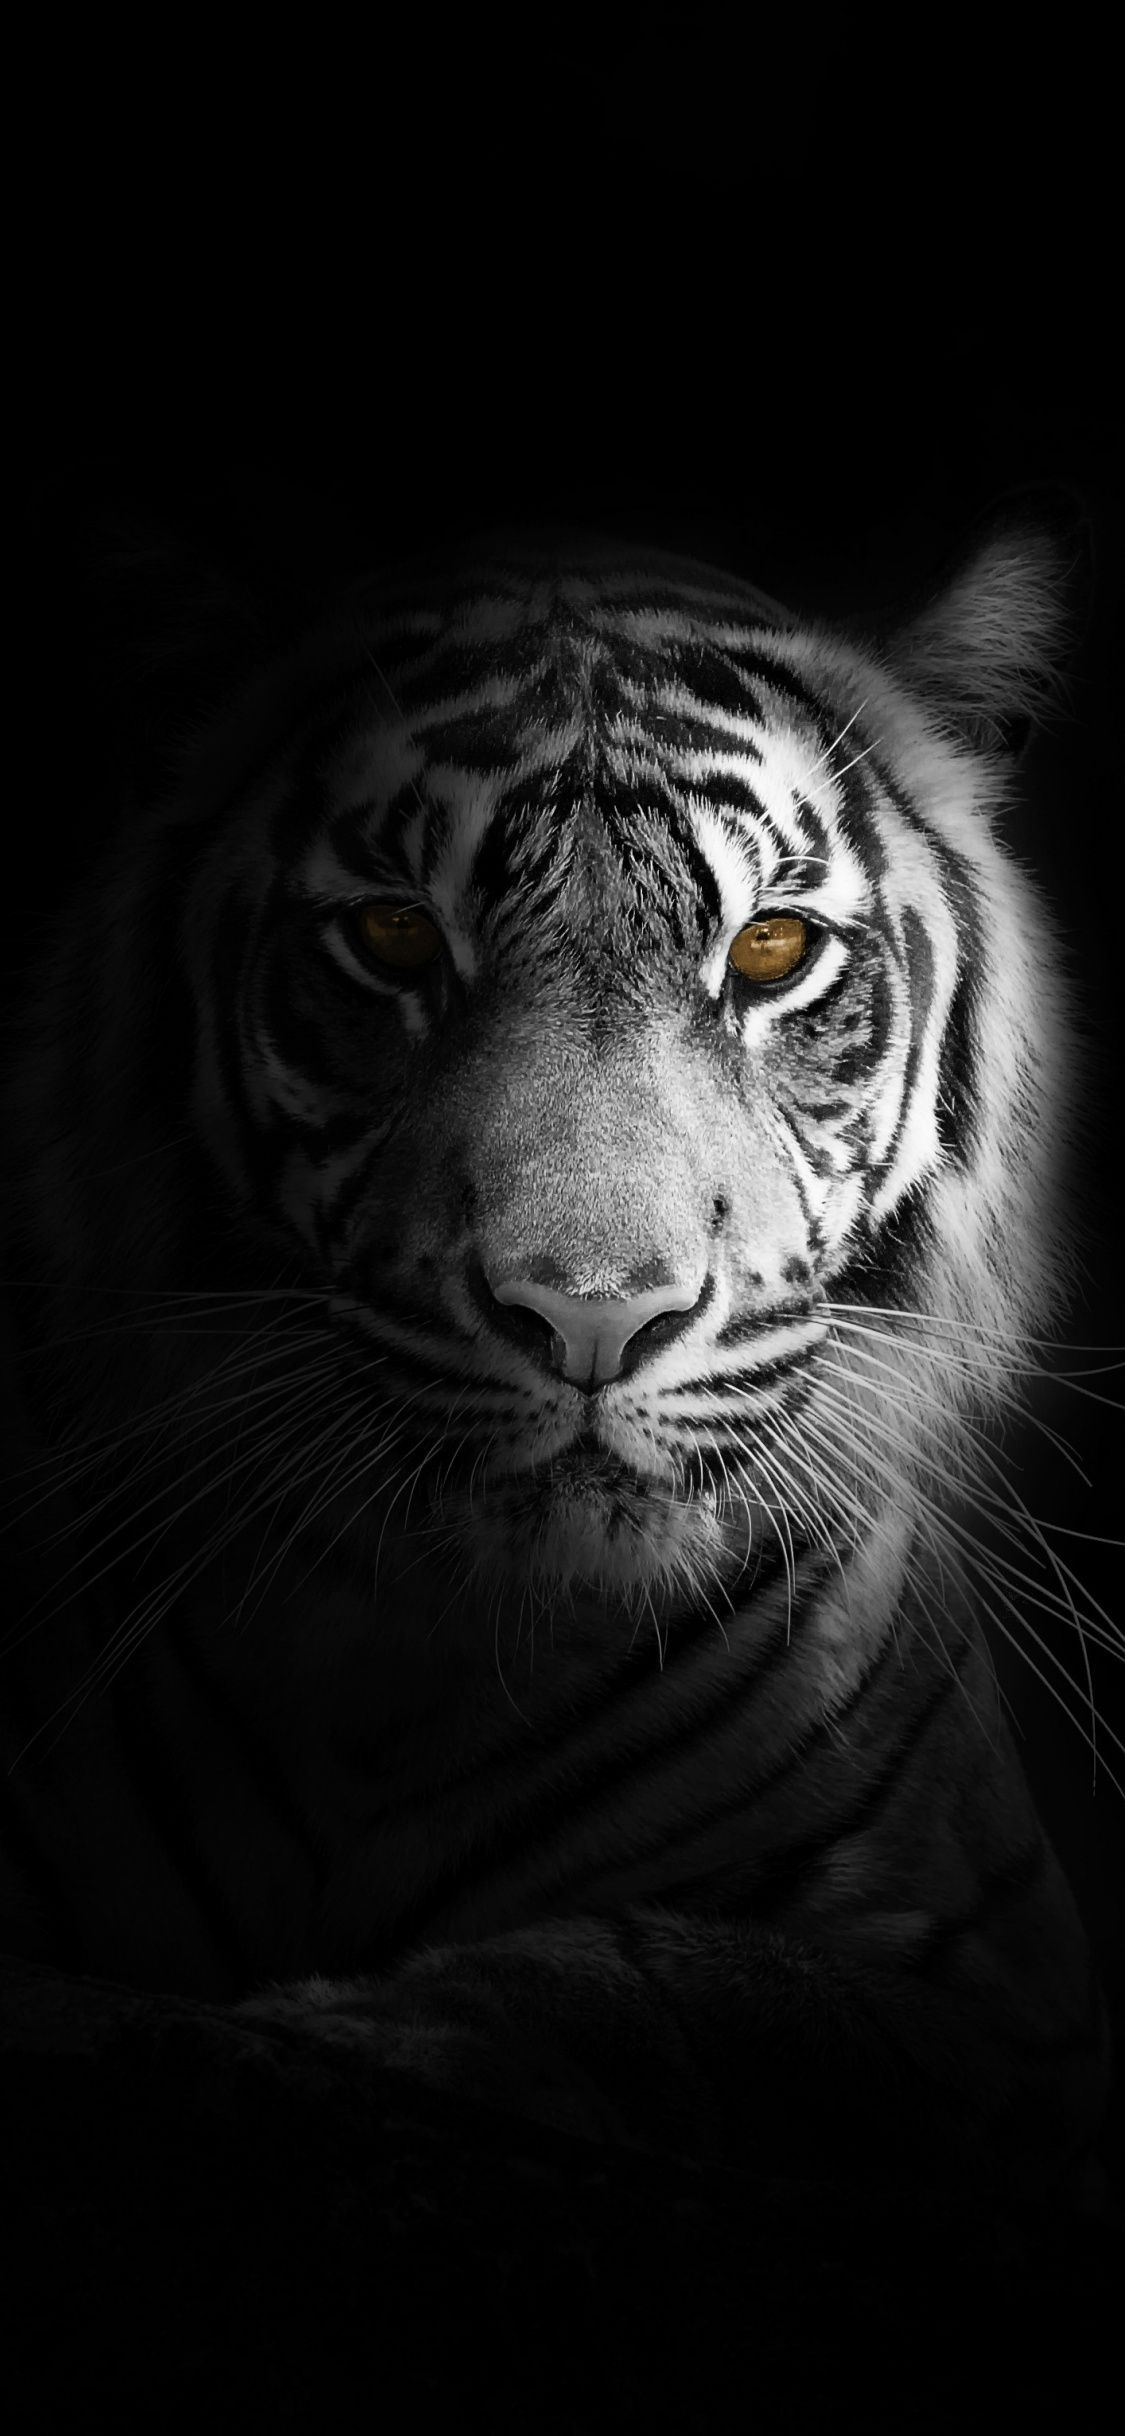 White Tiger Wallpaper For Android Phone Tiger Wallpaper Tiger Photography Tiger Wallpaper Iphone